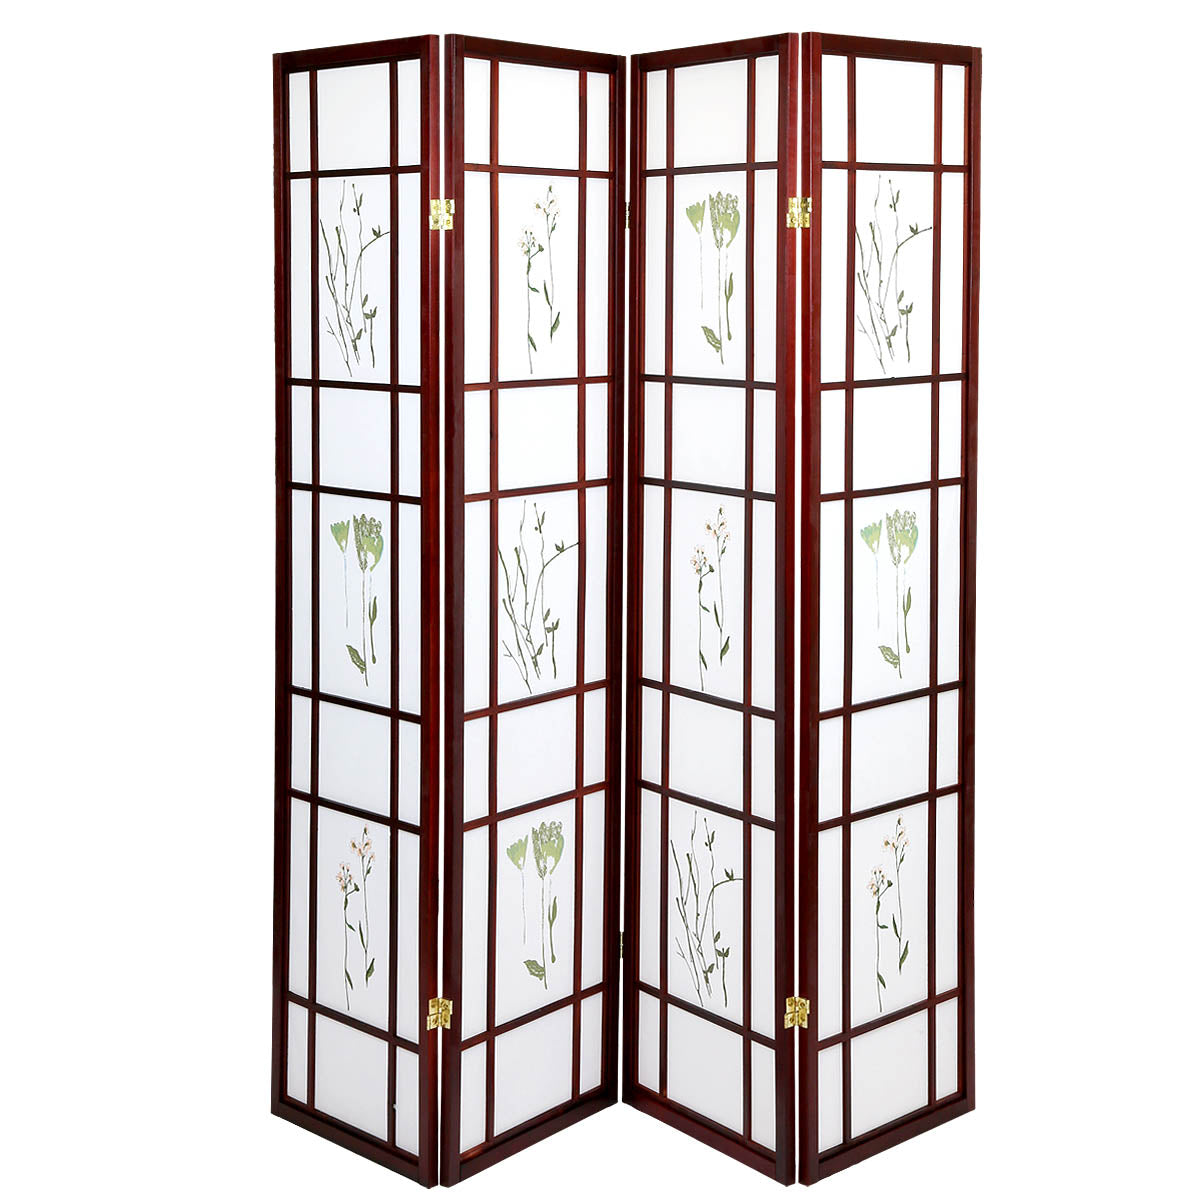 White Smoke 4 Panels Japanese Style Oriental Folding Room Divider Screen Hardwood Shoji Screen Room Separator Partition Wall Small Flowered Cherry